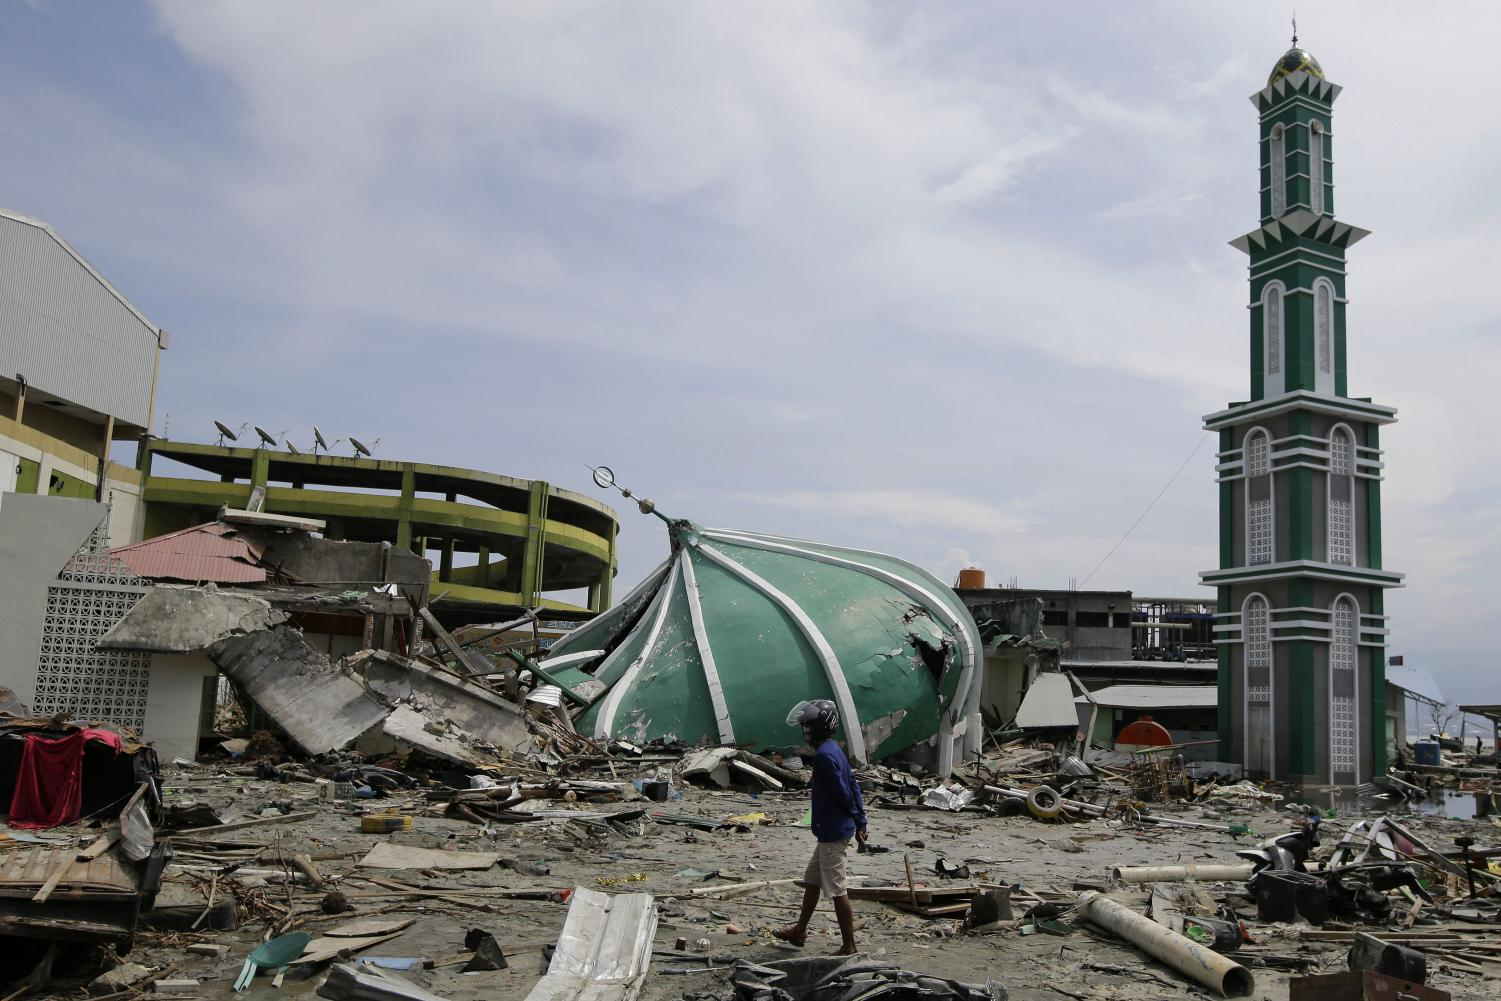 The aftermath of the earthquake and tsunami that struck Indonesia (photo courtesy of AccuWeather).